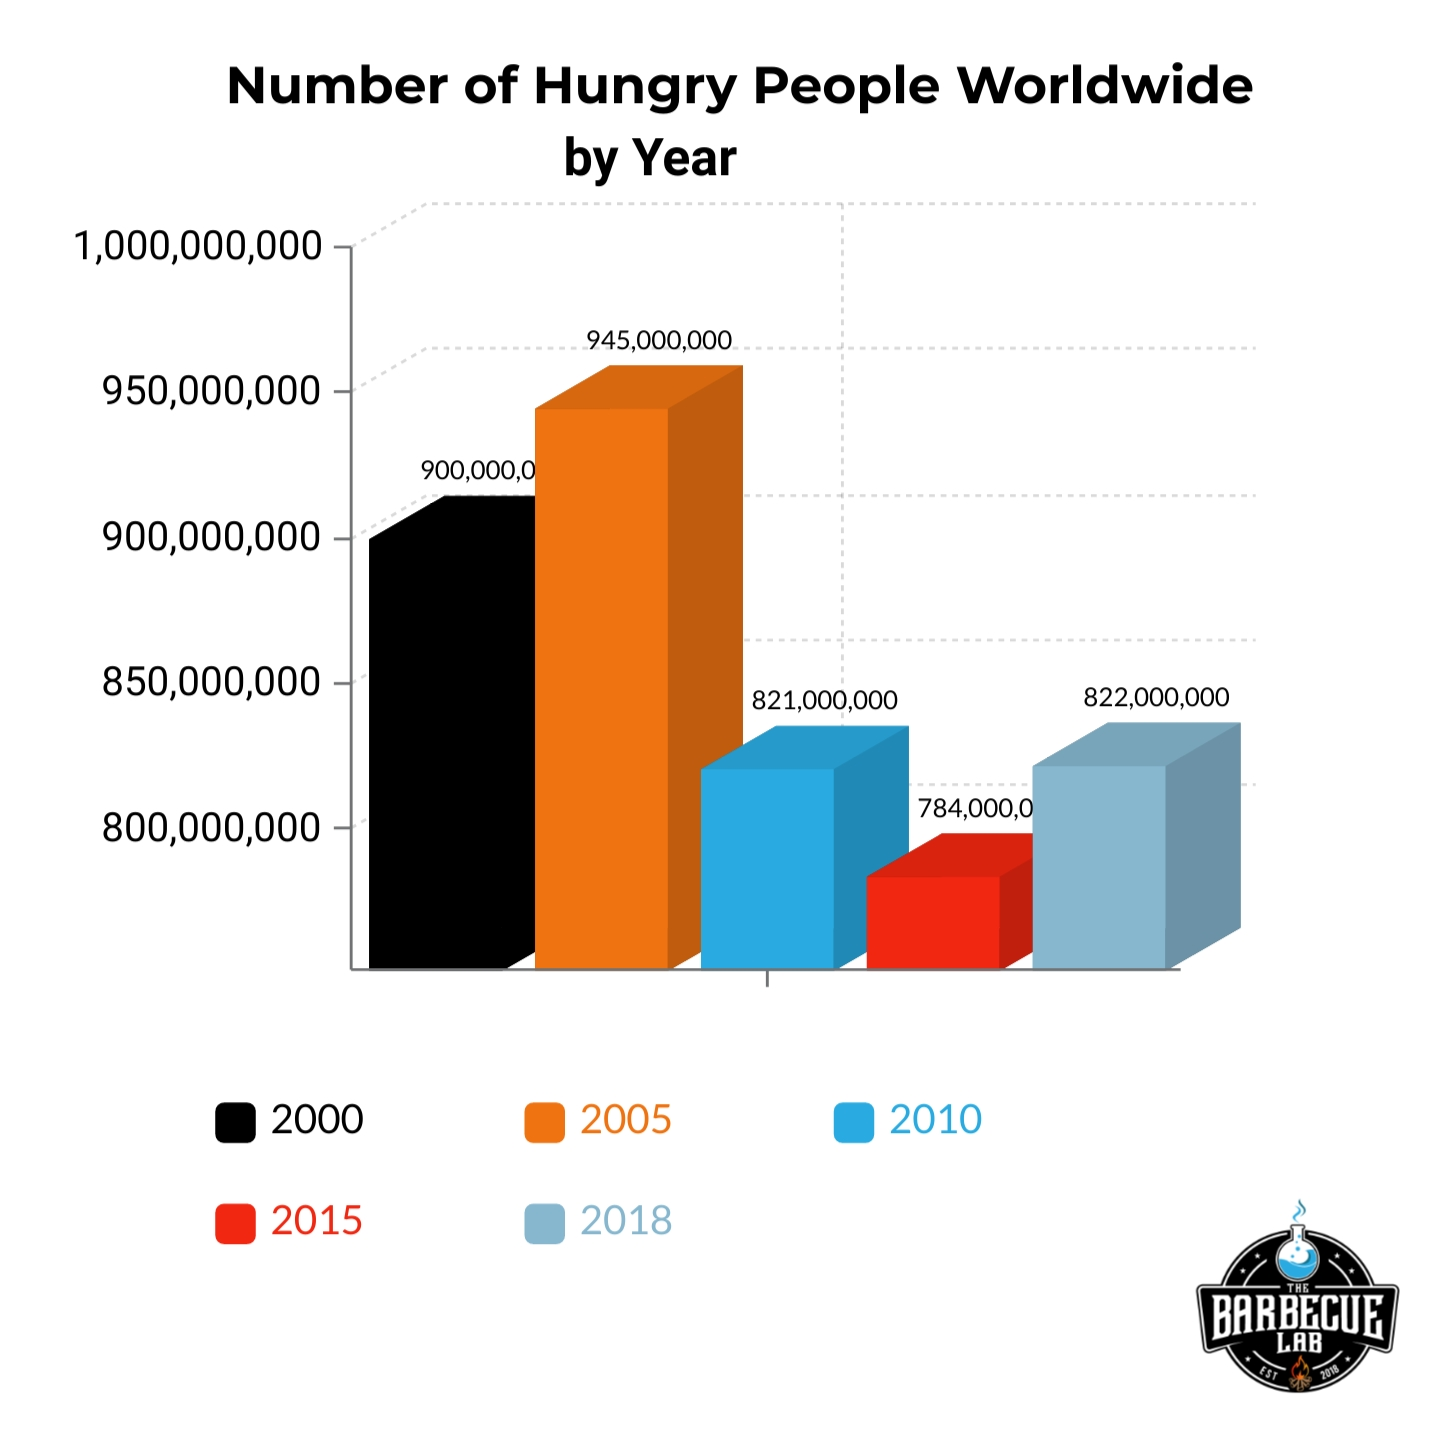 bar graph showing the number of hungry people worldwide by year